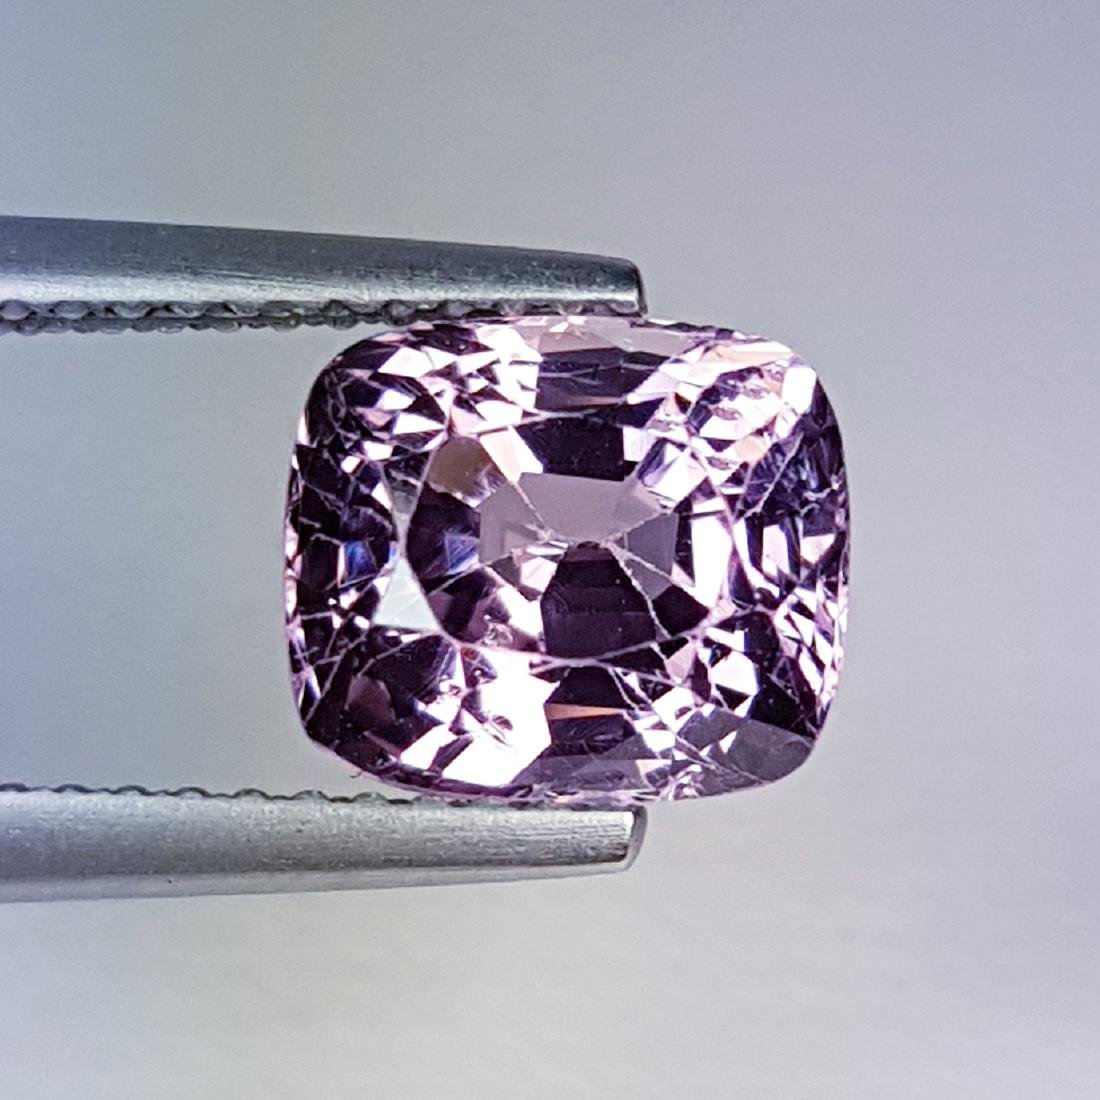 2.75 ct Exclusive Gem Cushion Cut Natural Spinel - 2